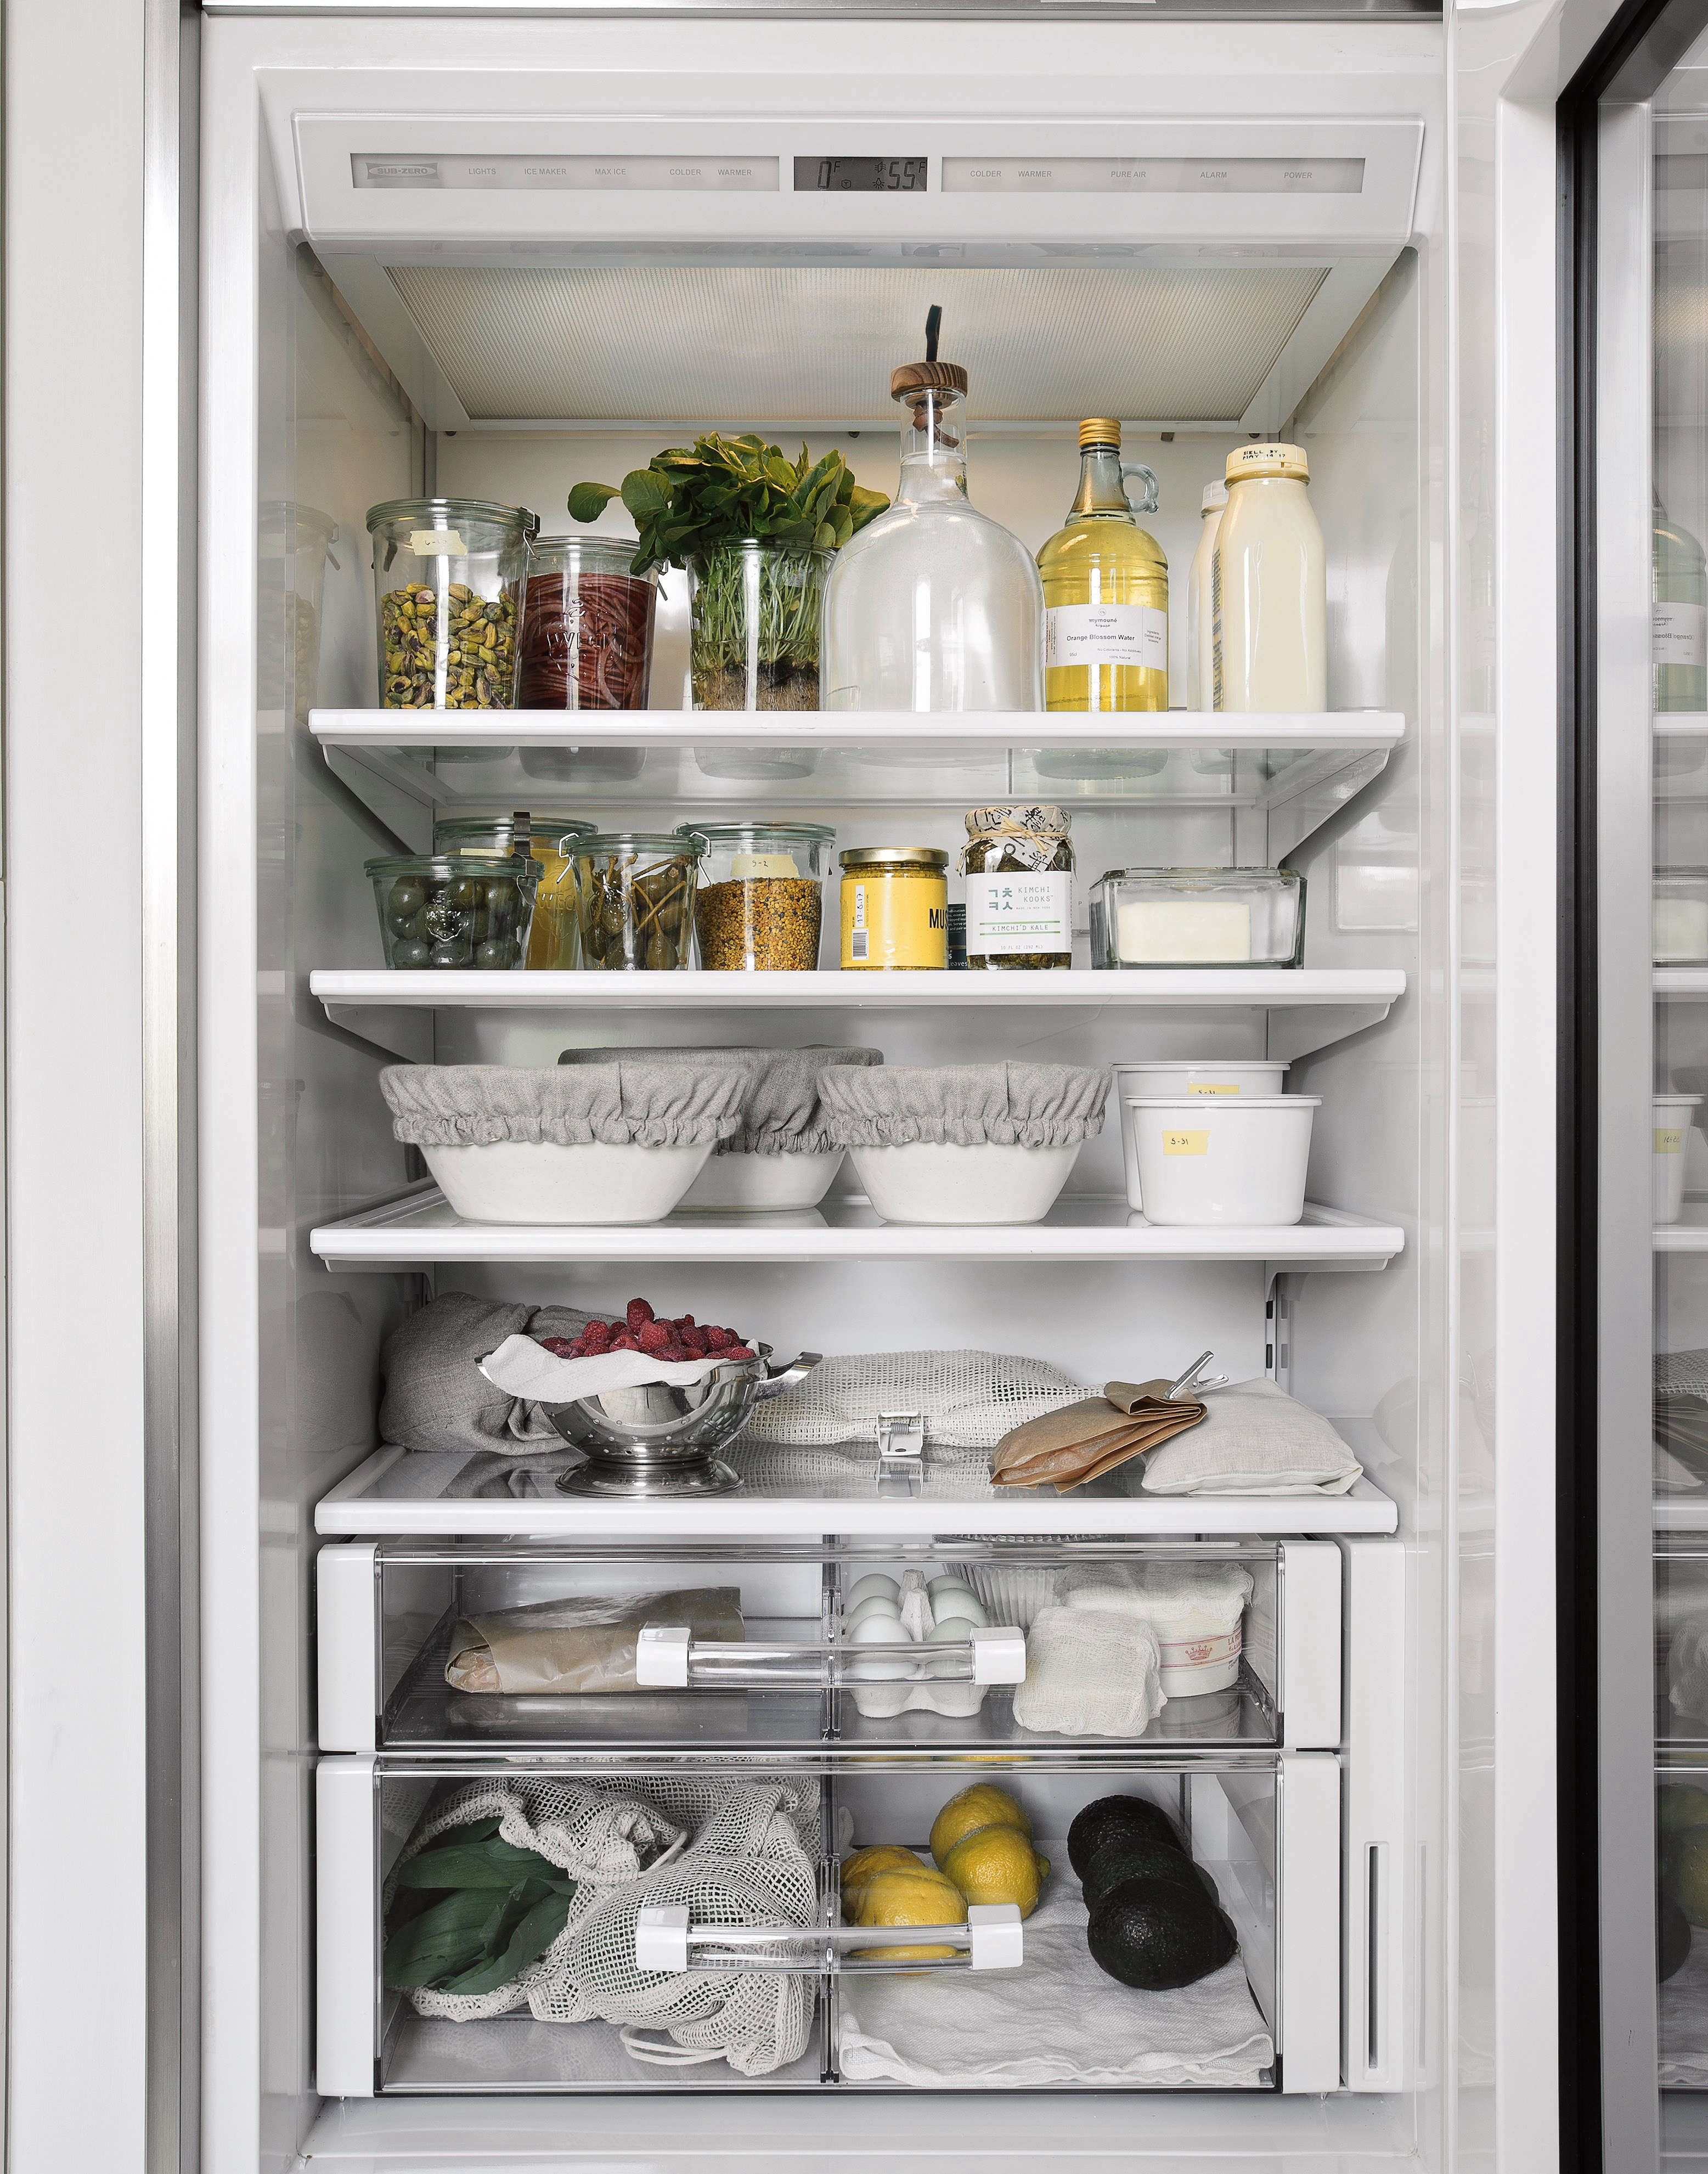 Refrigerator Interior from Organized Home Book, Image by Matthew Williams